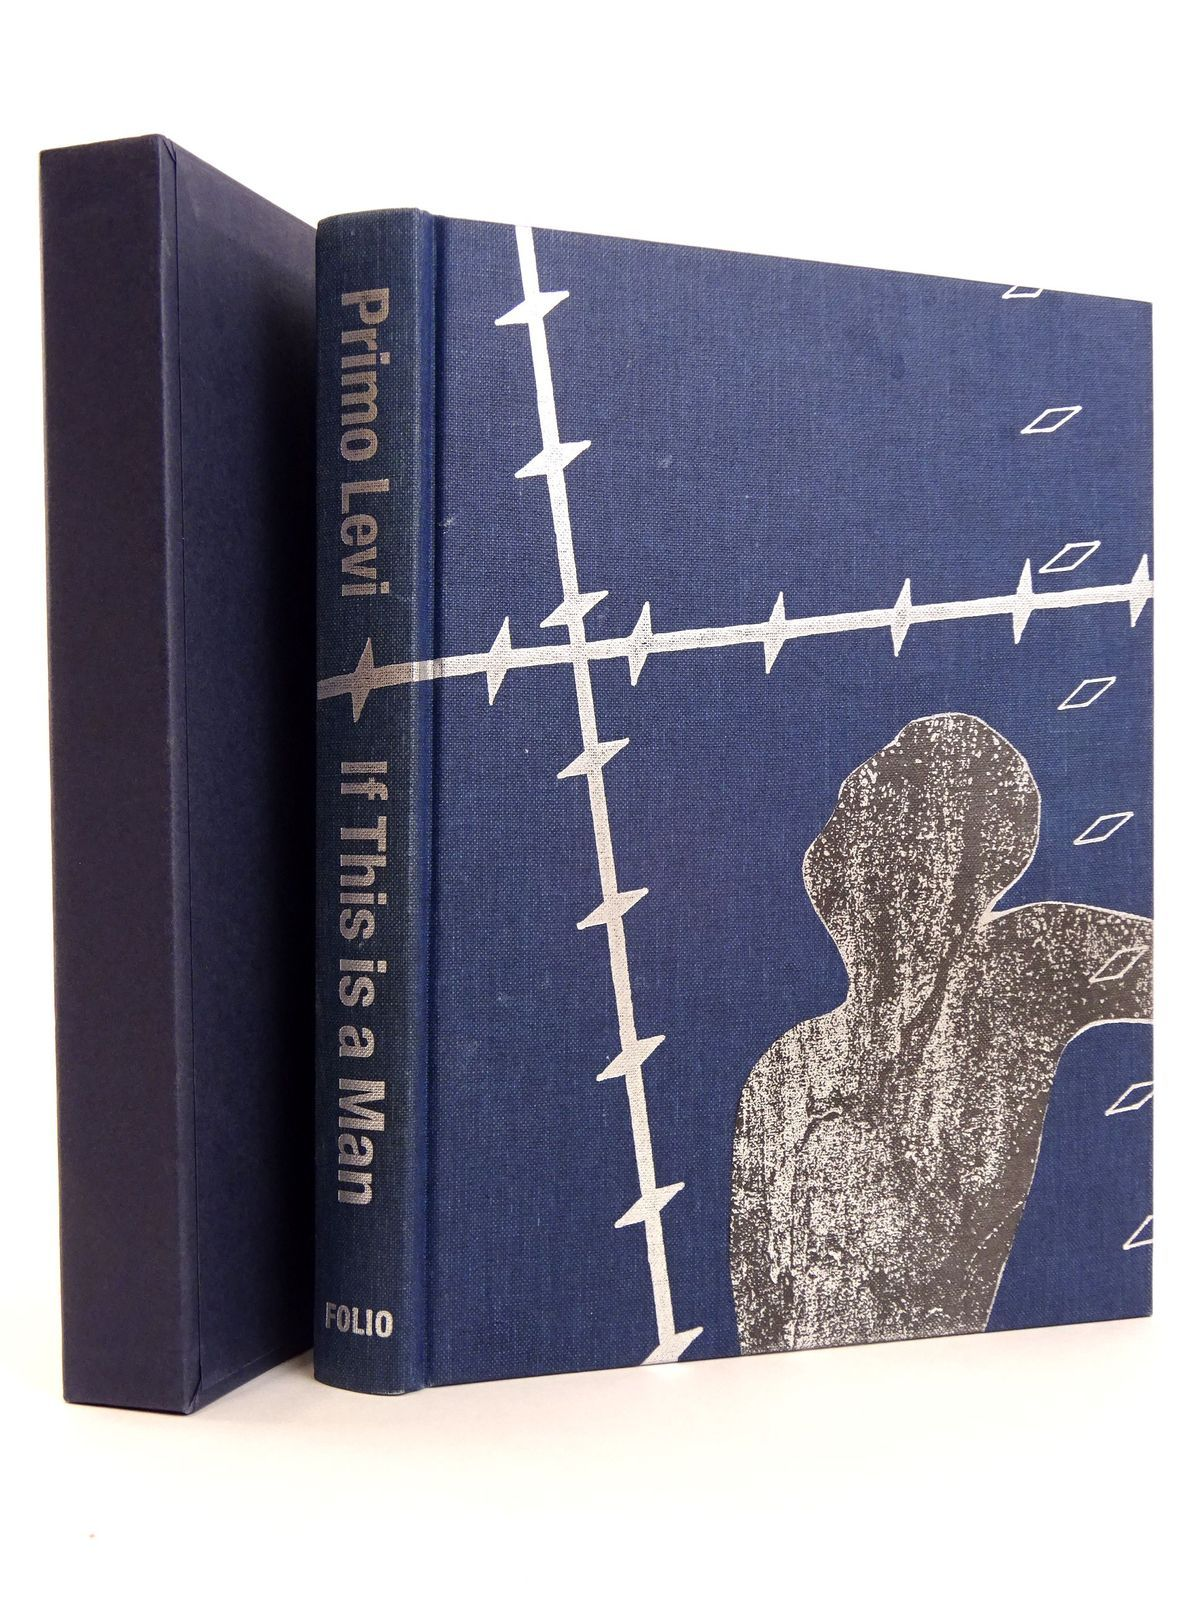 Photo of IF THIS IS A MAN written by Levi, Primo illustrated by Joseph, Jane published by Folio Society (STOCK CODE: 1818126)  for sale by Stella & Rose's Books